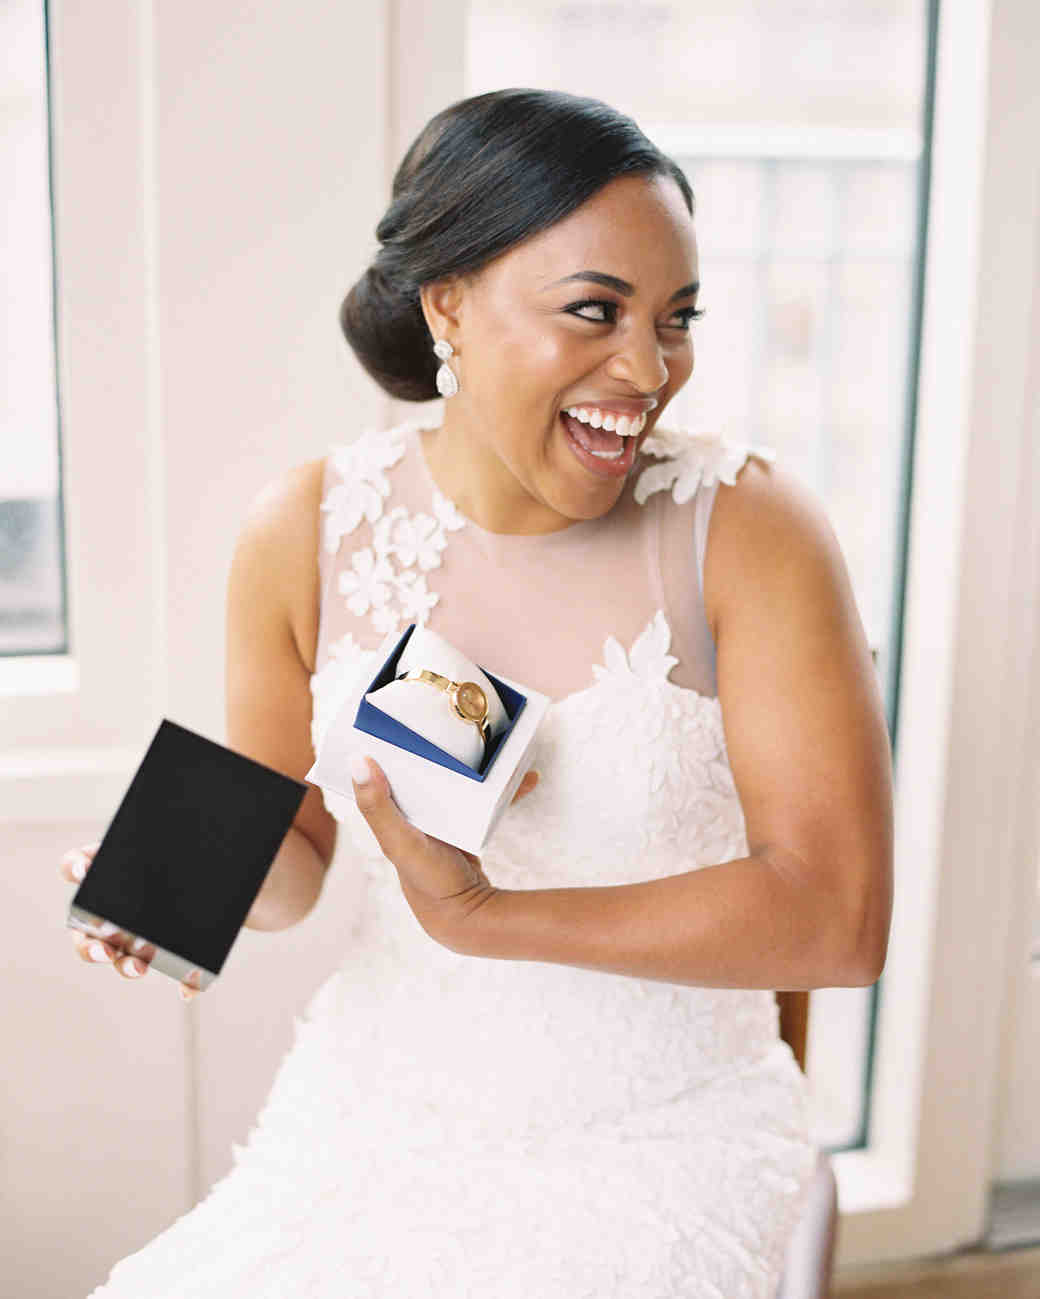 melissa justen wedding bride with watch gift